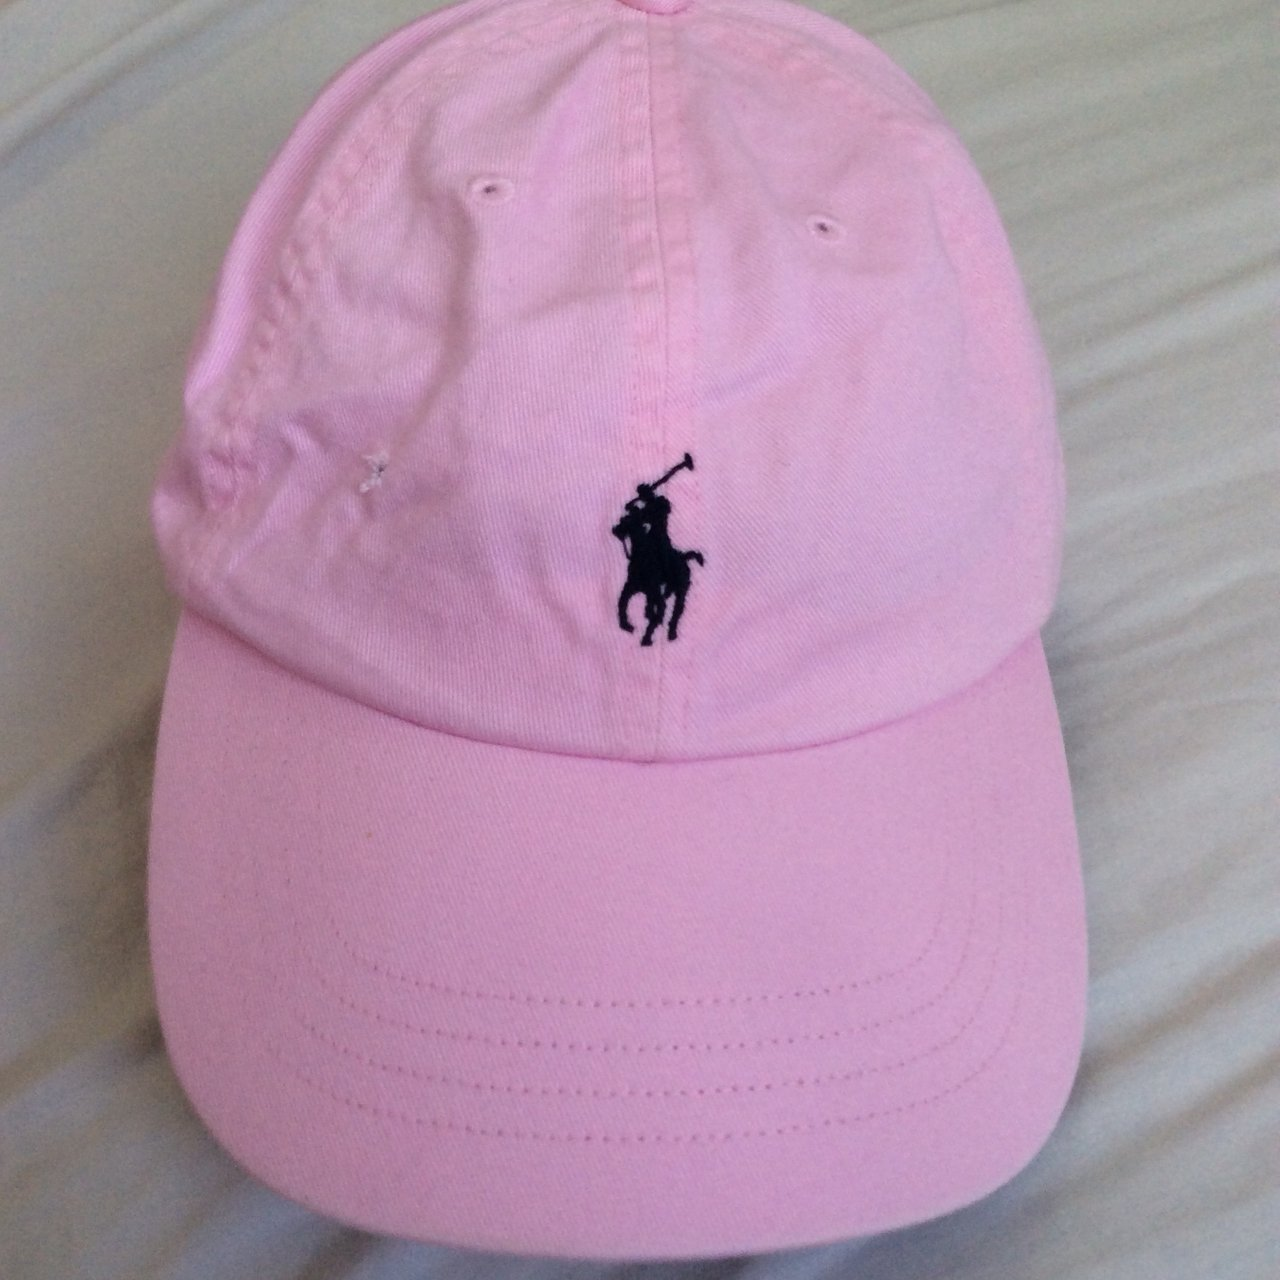 Ralph Lauren Polo cap in pink and black •Great condition a - Depop 91e6db5477f